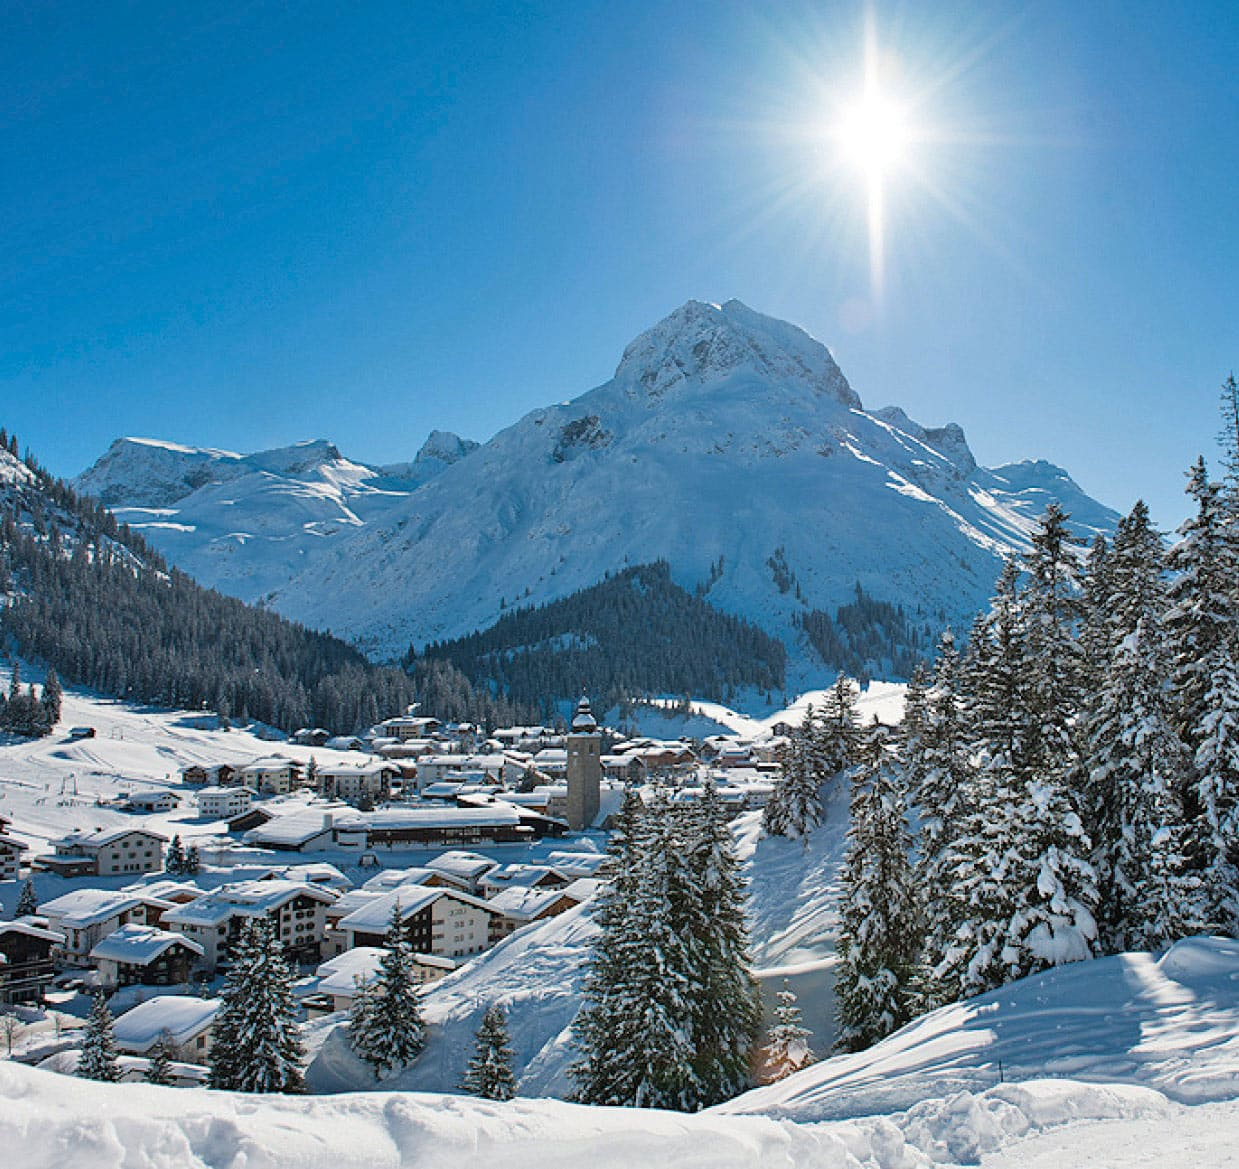 Appart Andrea - Lech Living in Wintertime